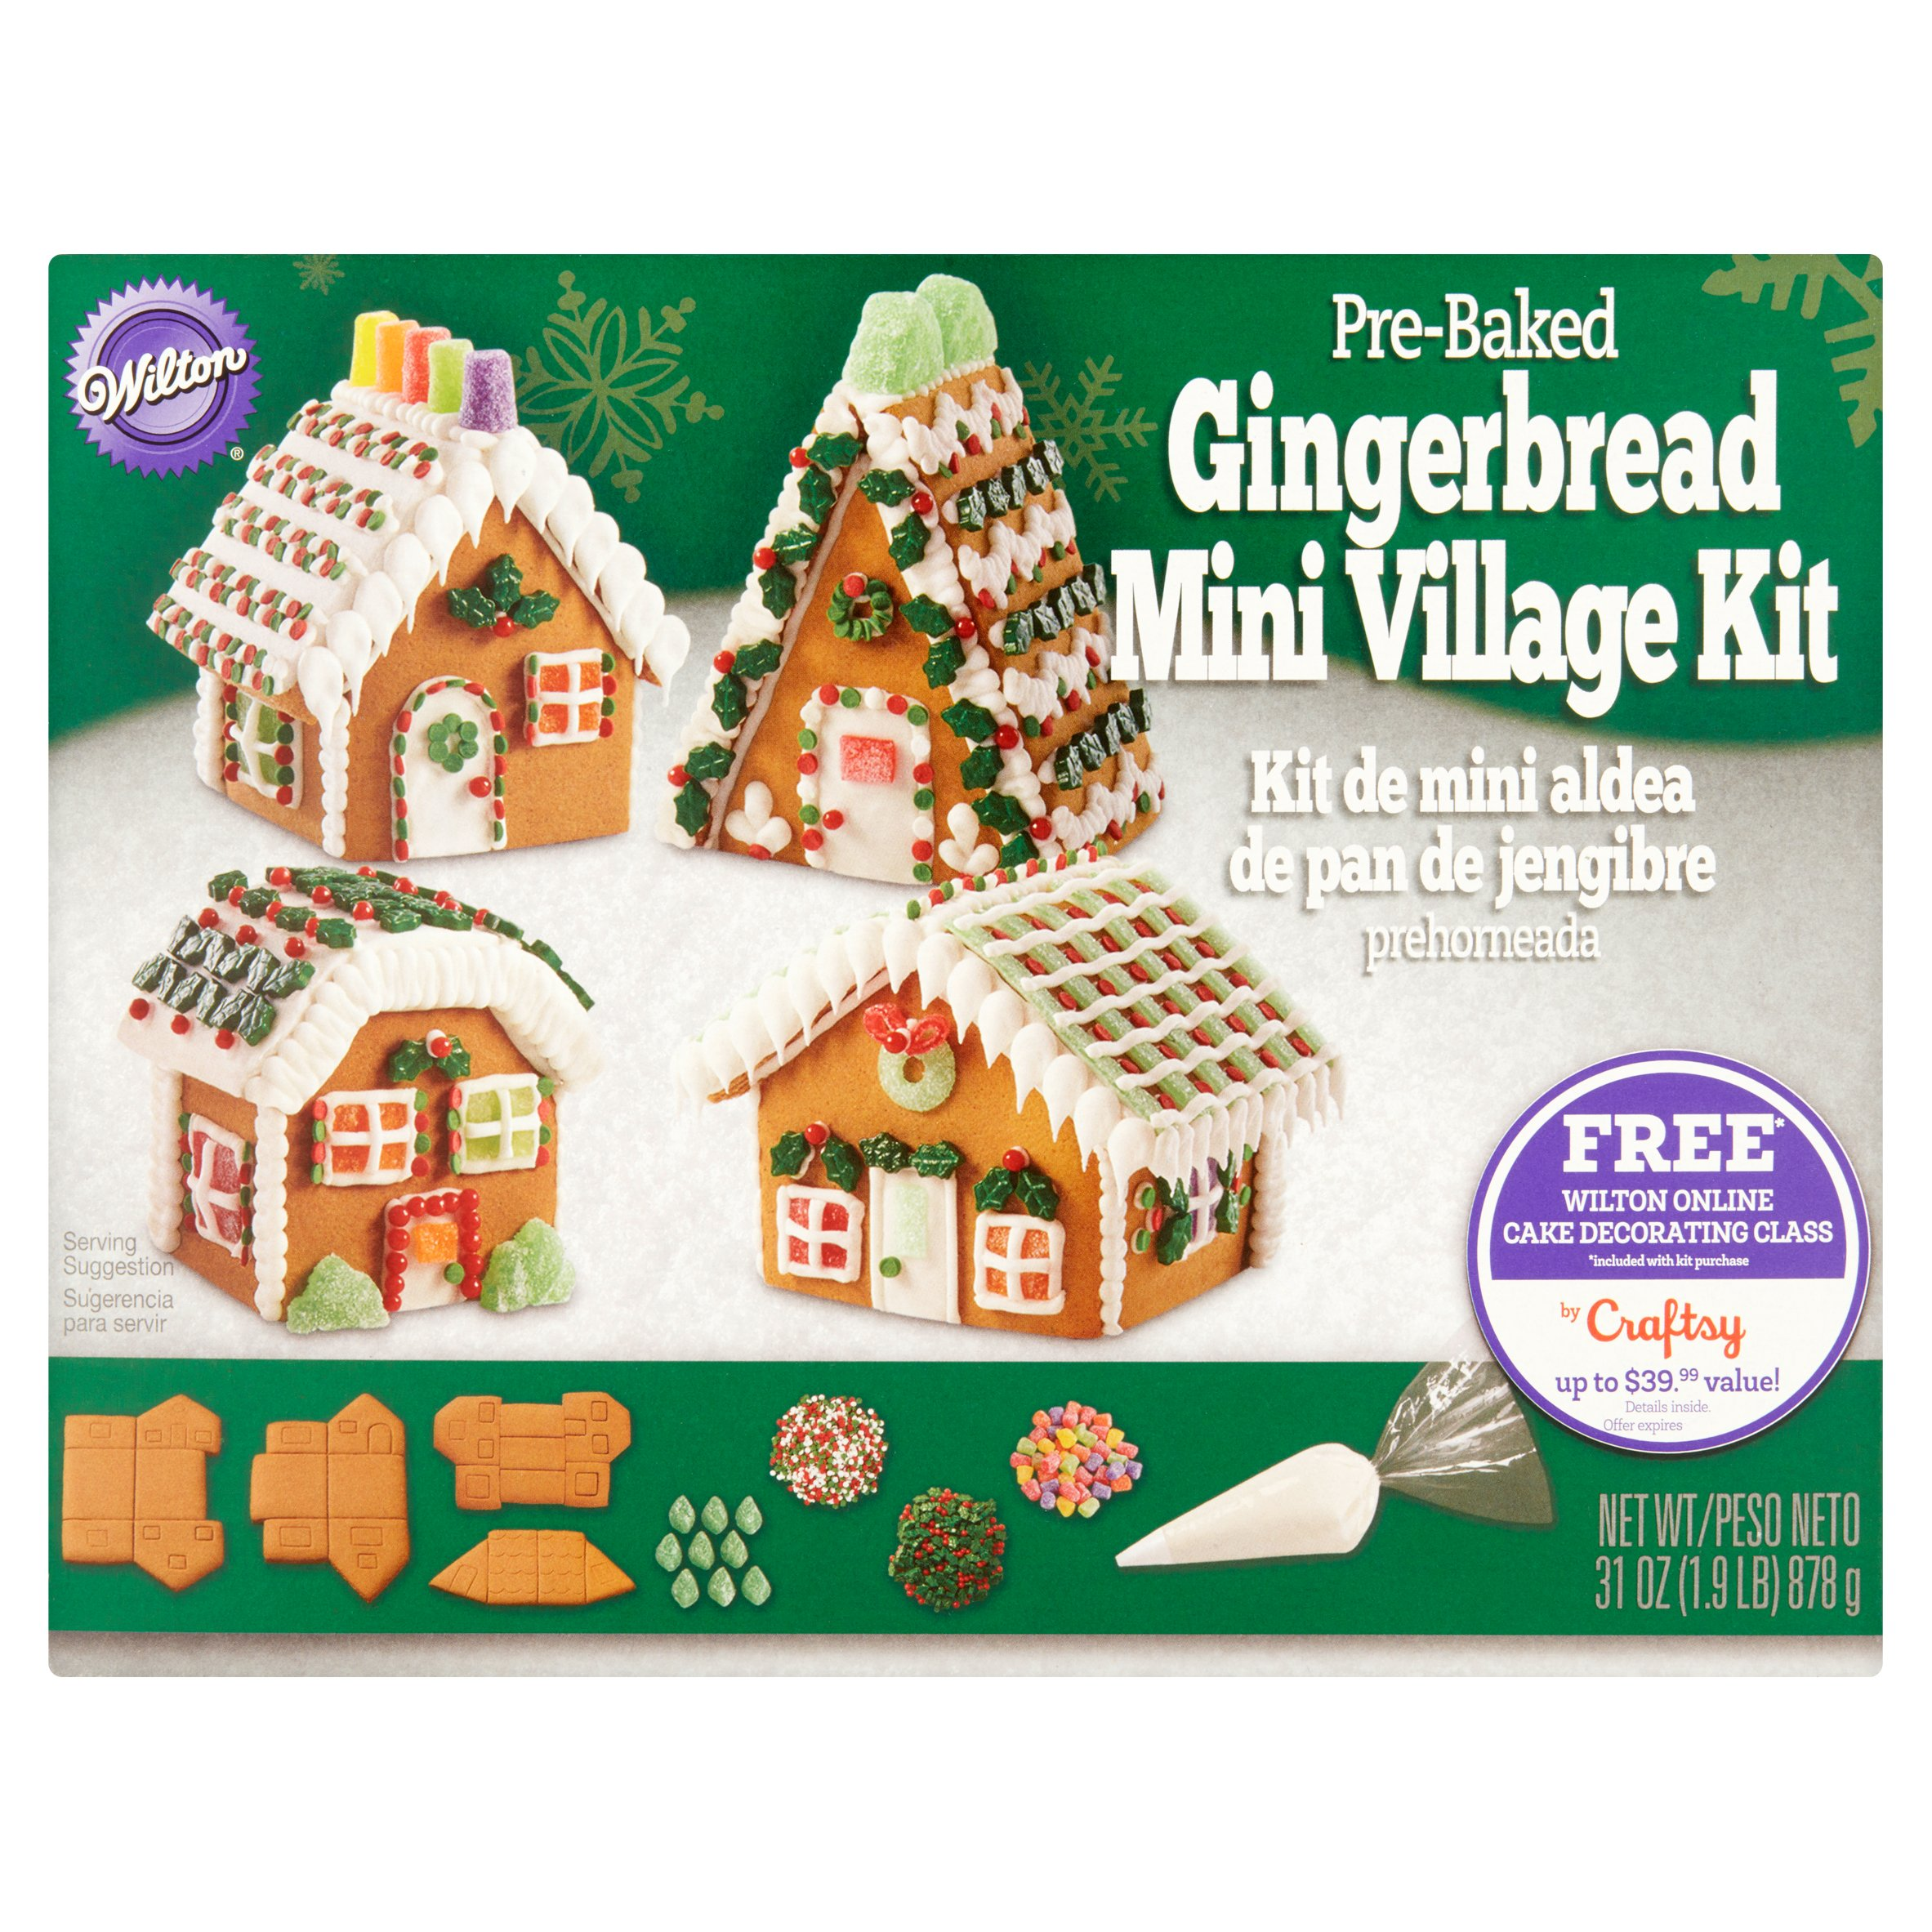 Wilton Pre-Baked Gingerbread Mini Village Kit 31 oz